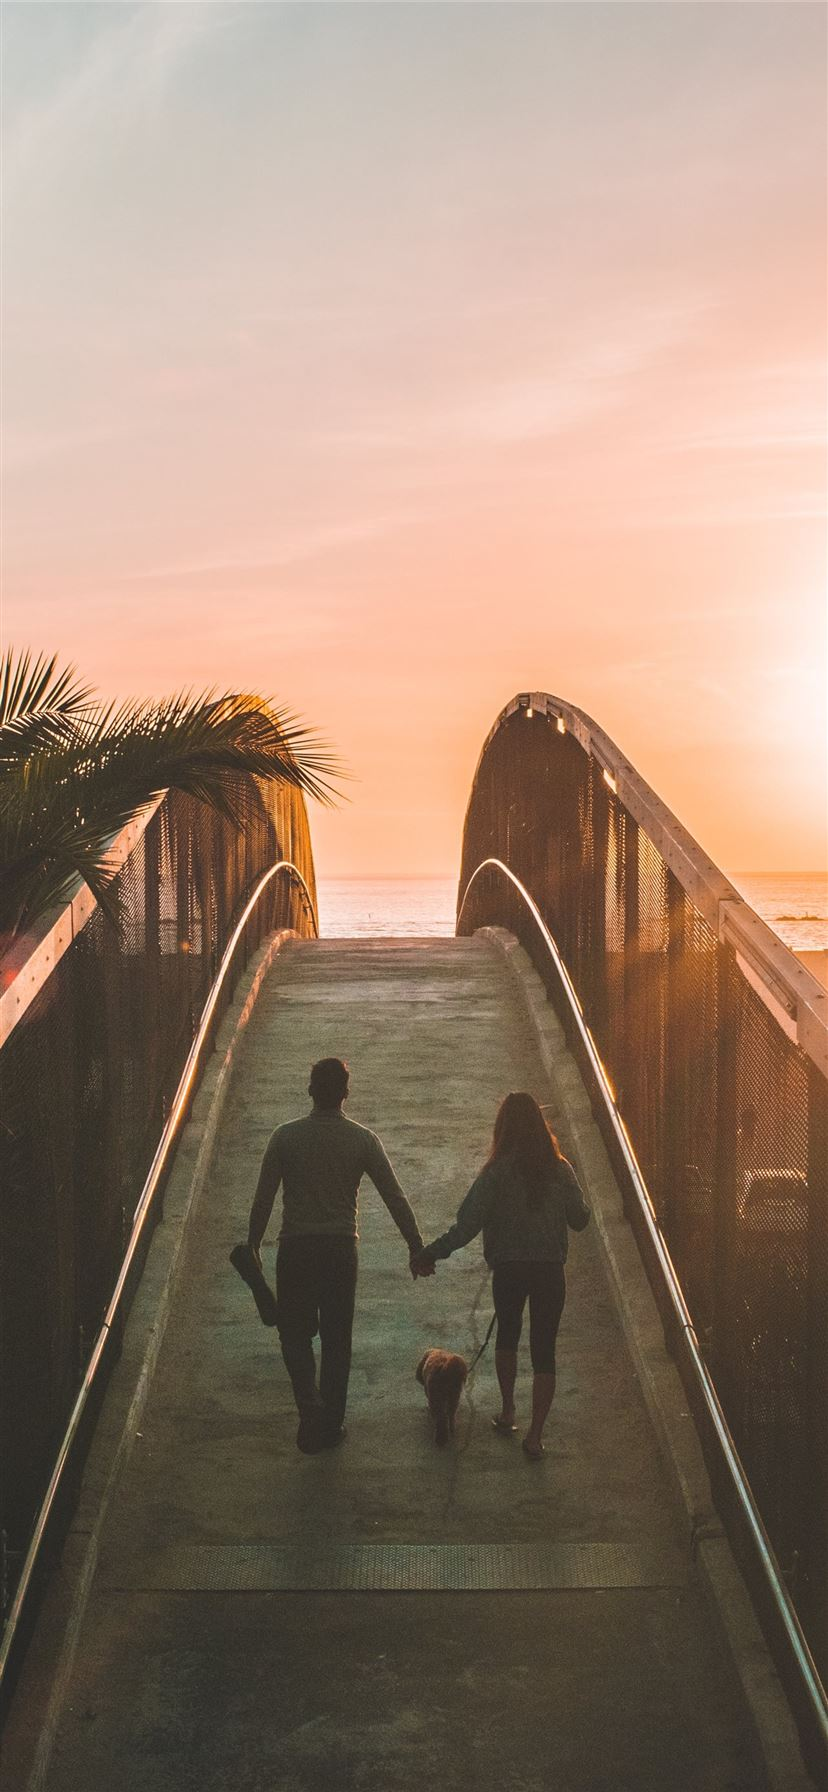 man and woman holding hand while walking on bridge iPhone 11 wallpaper